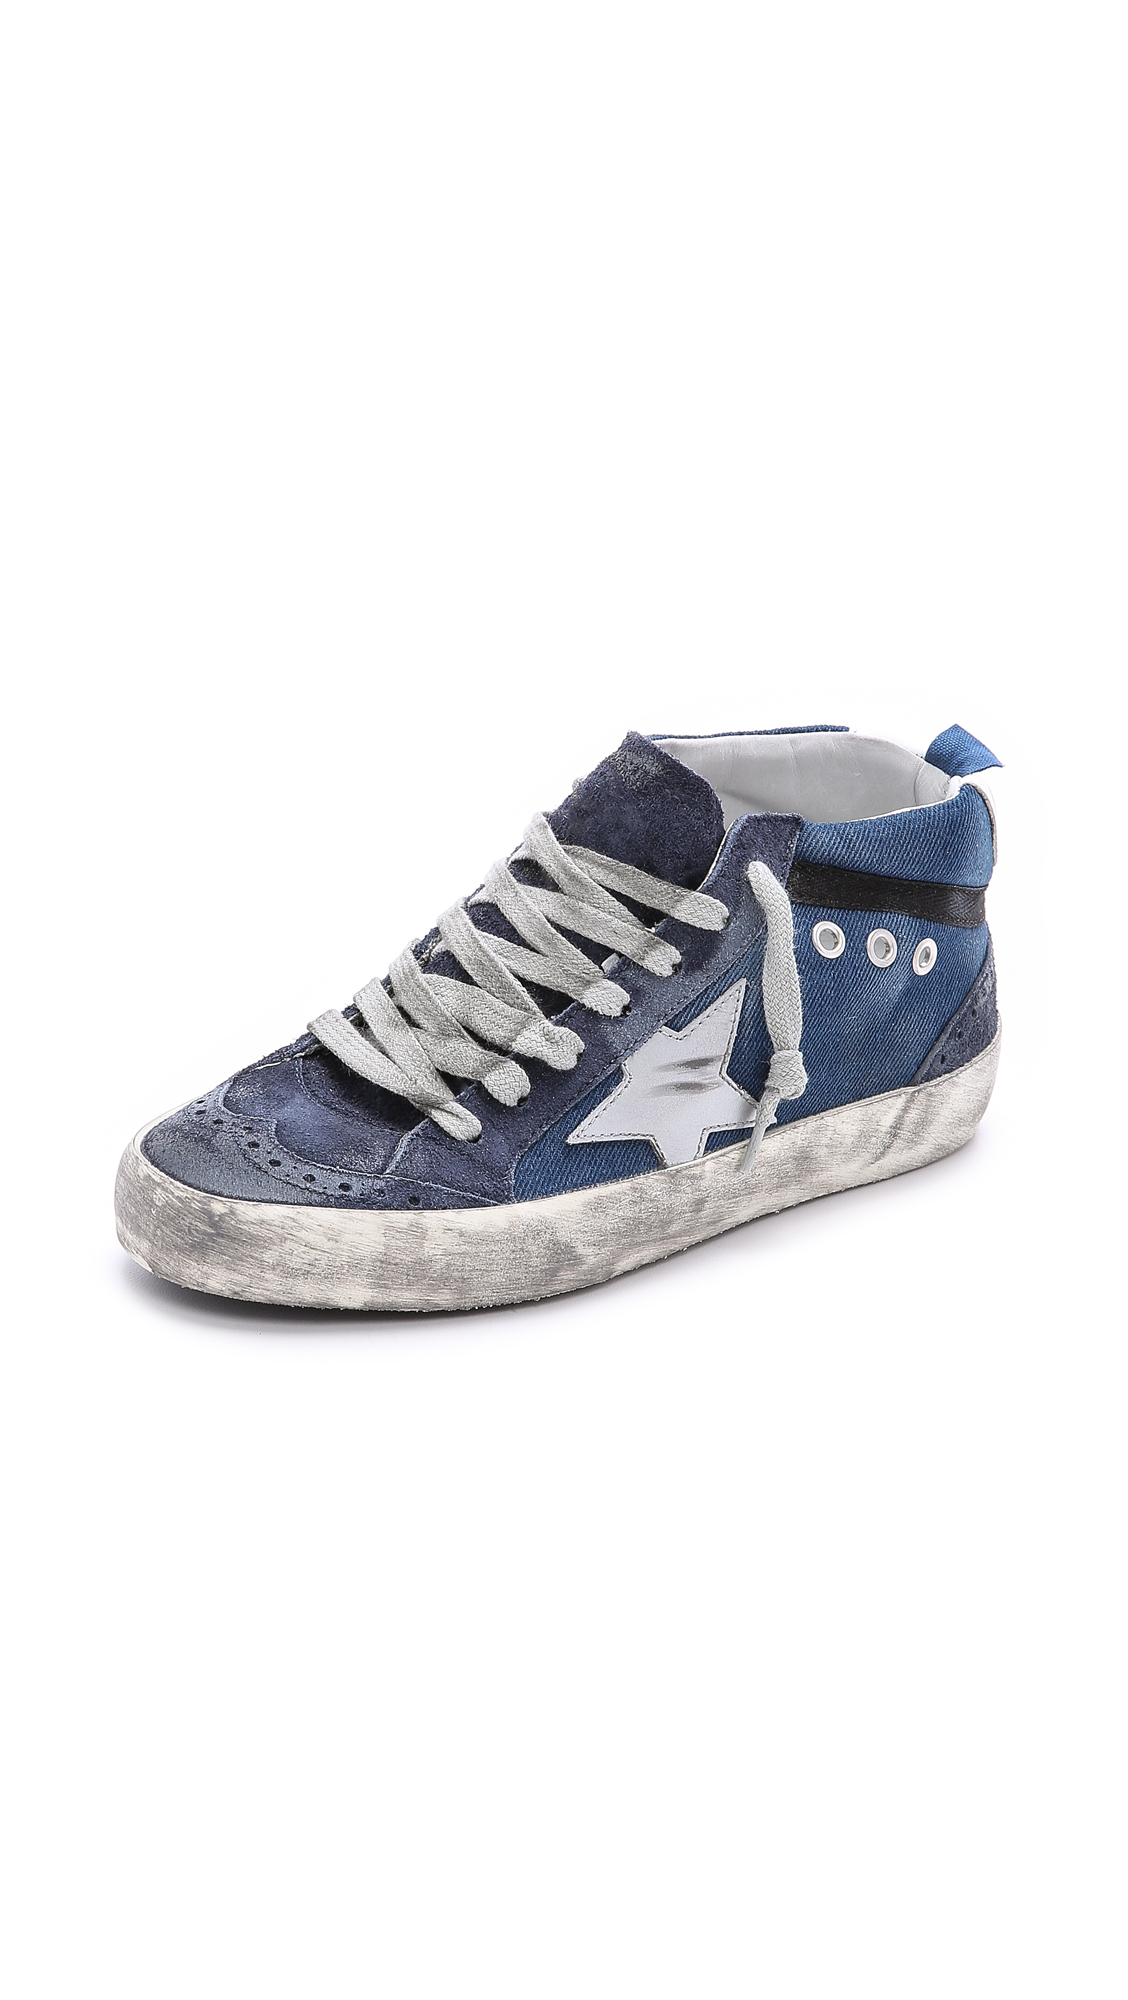 golden goose deluxe brand mid star sneakers denim in blue denim lyst. Black Bedroom Furniture Sets. Home Design Ideas